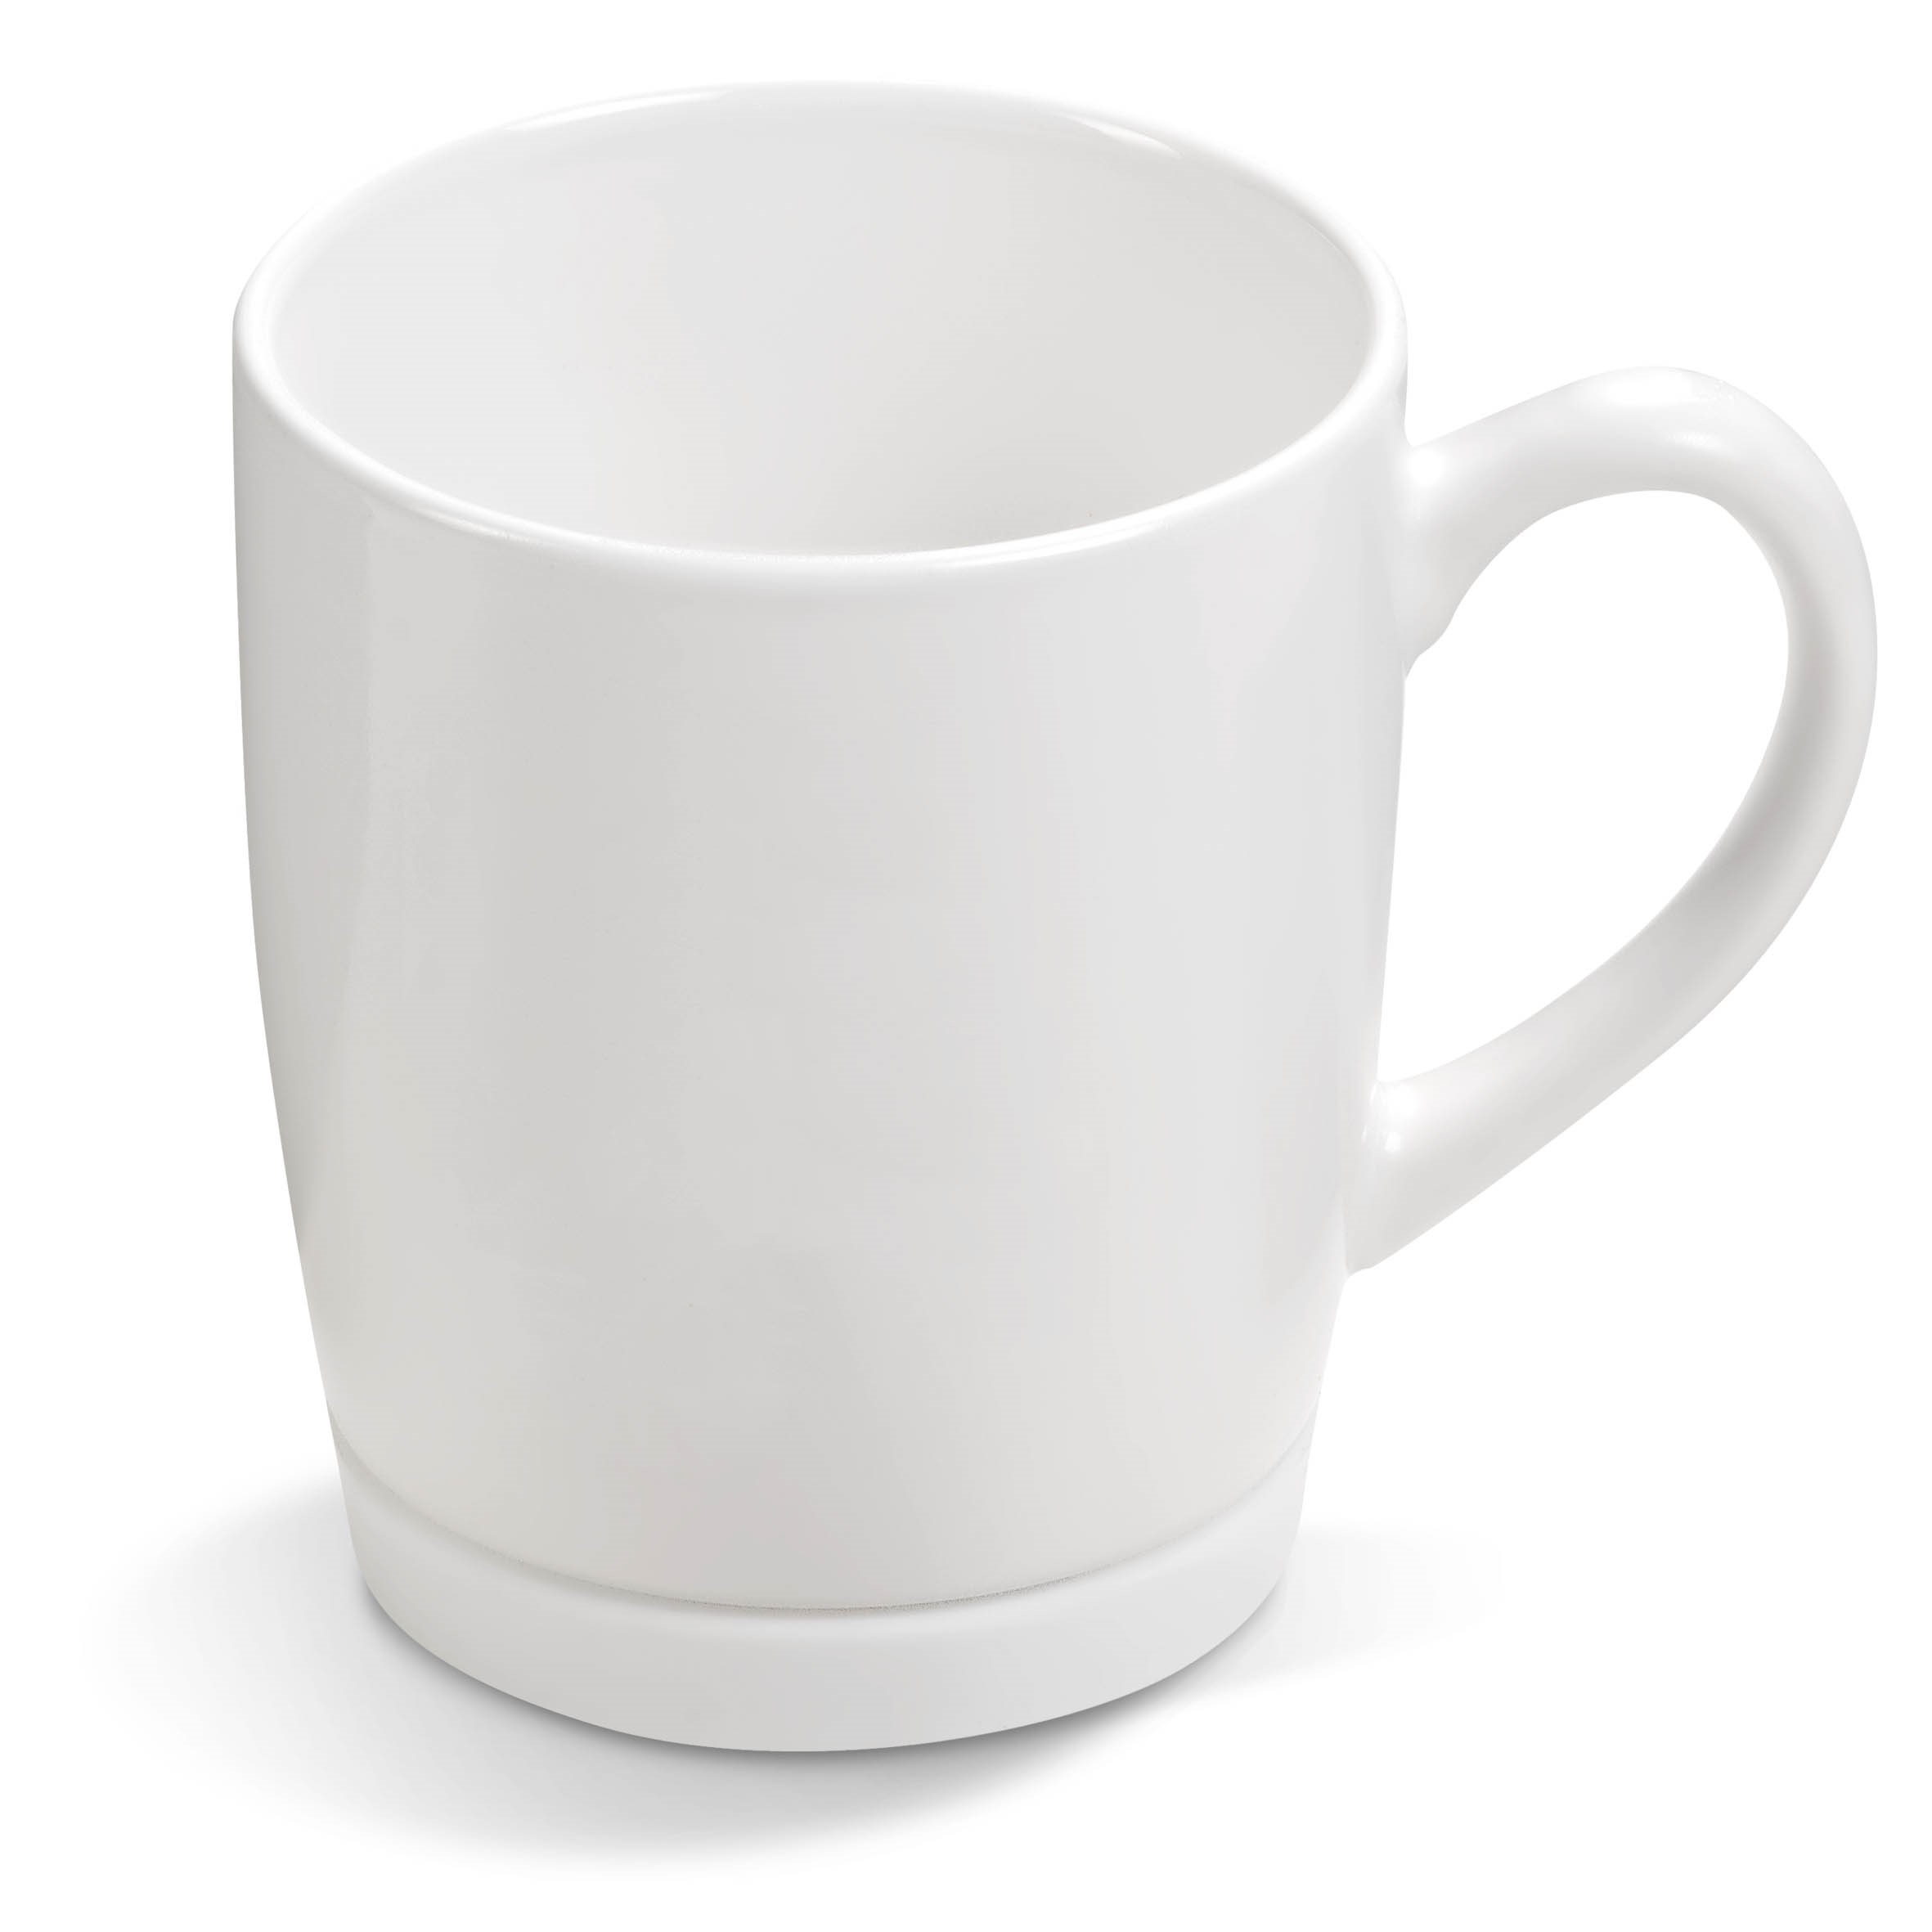 Product: Home-Base Sublimation Mug - Solid White Only - 310ml